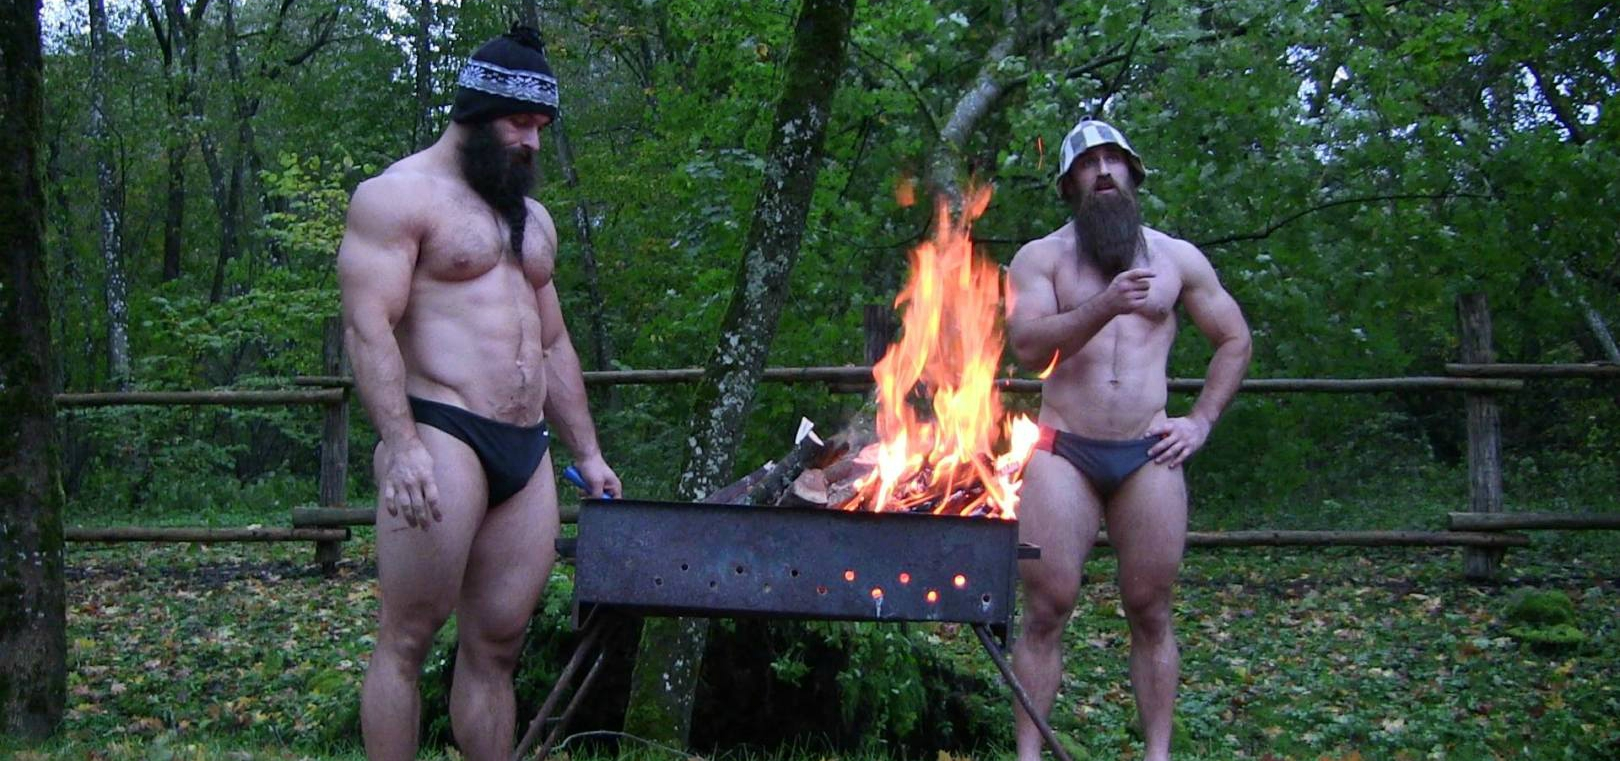 Watch These Hotter Than Hell CrossFit Gods Chill in Sub-Zero Temps (Video)